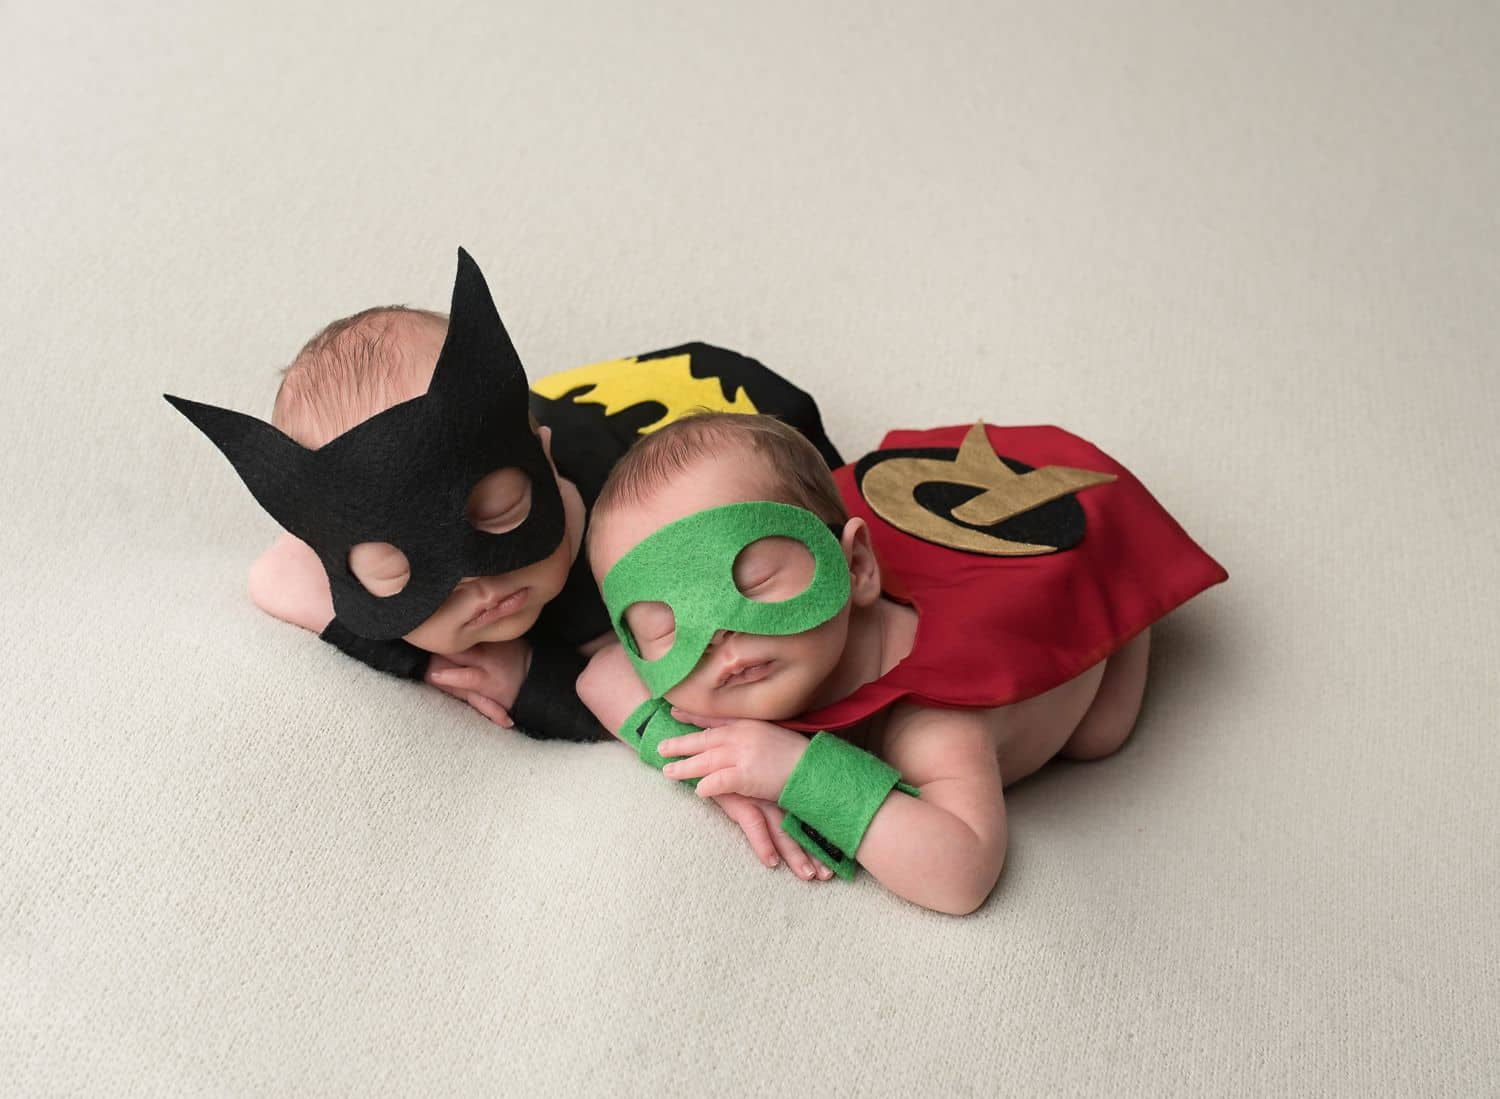 Two of the best newborn photograph props are these felt masks and miniature caps depicting newborn twins as Batman and Robin!